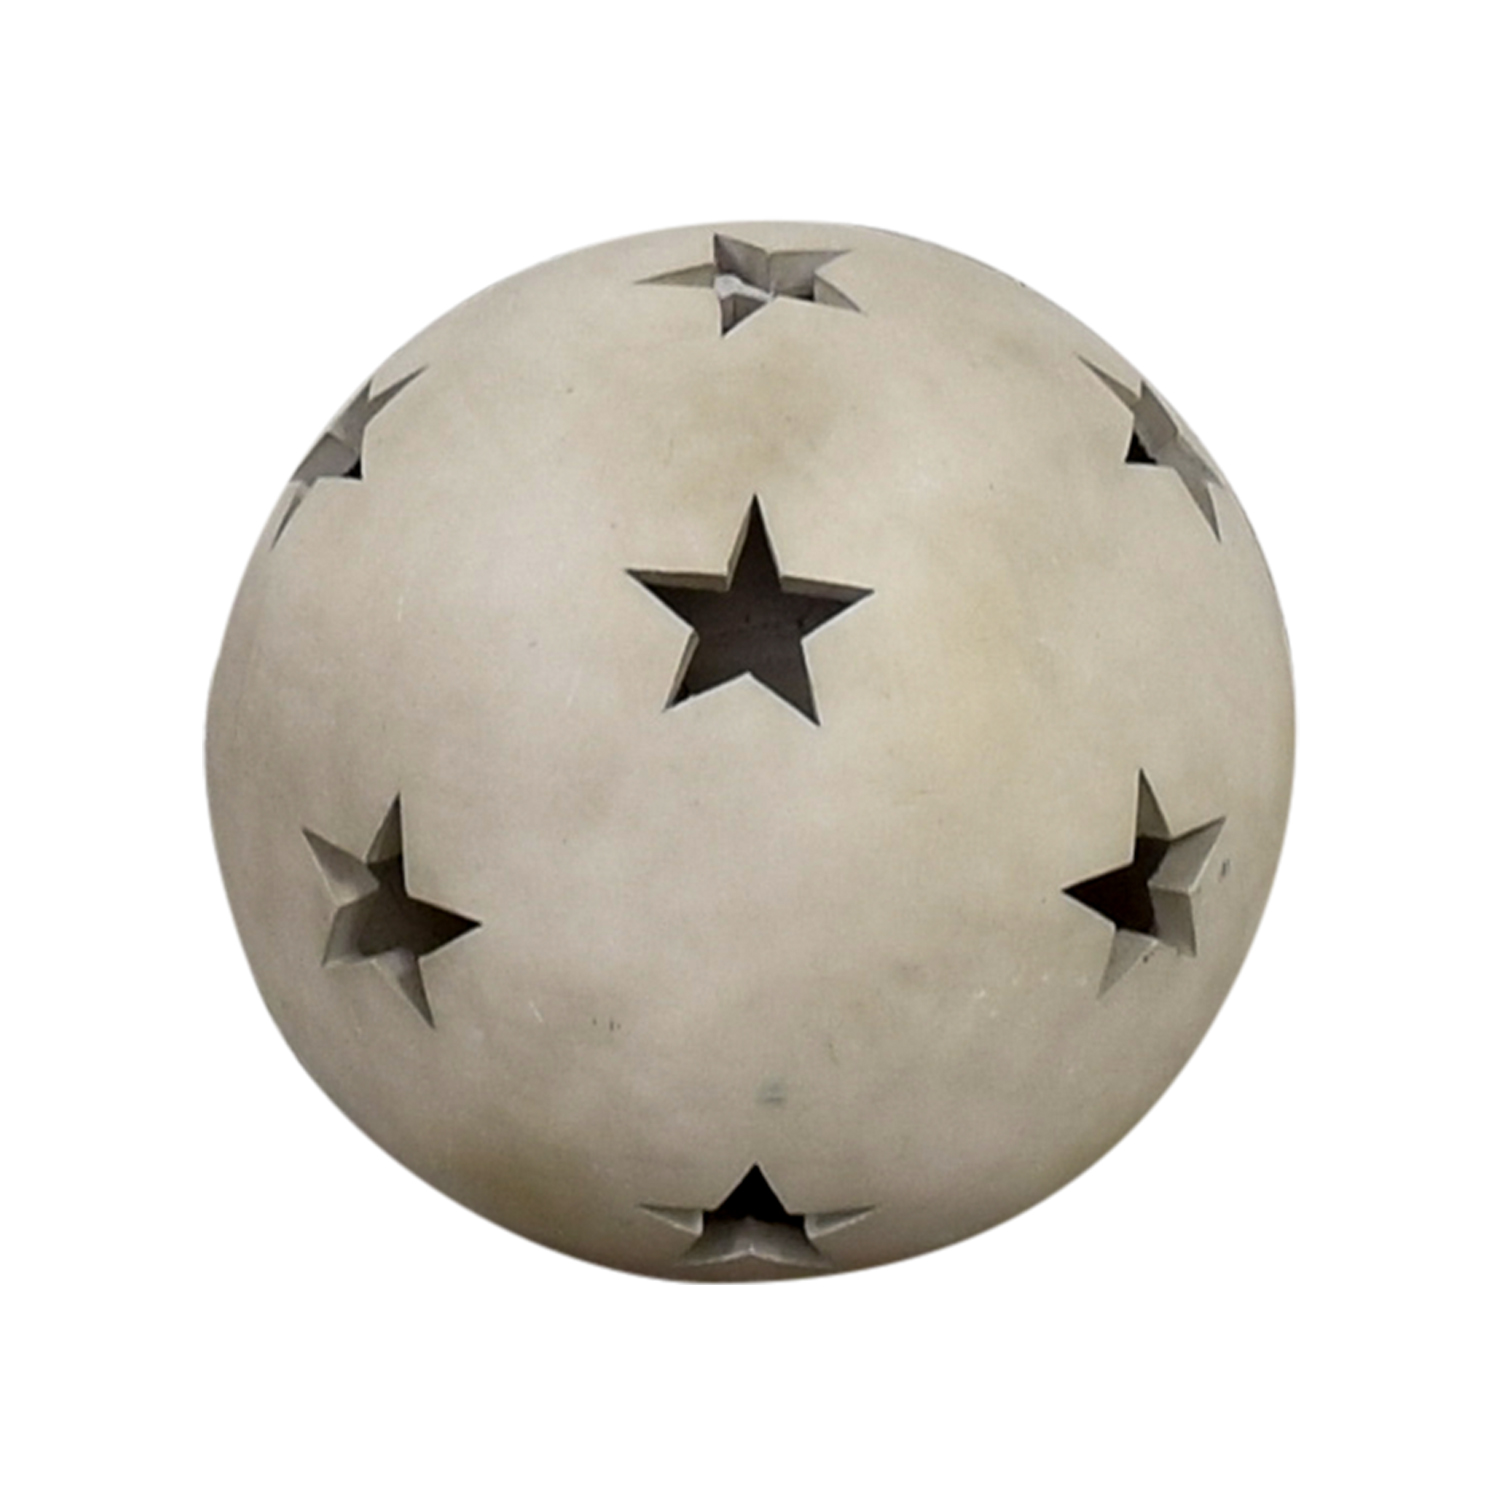 Clay Star Ball / Decorative Accents